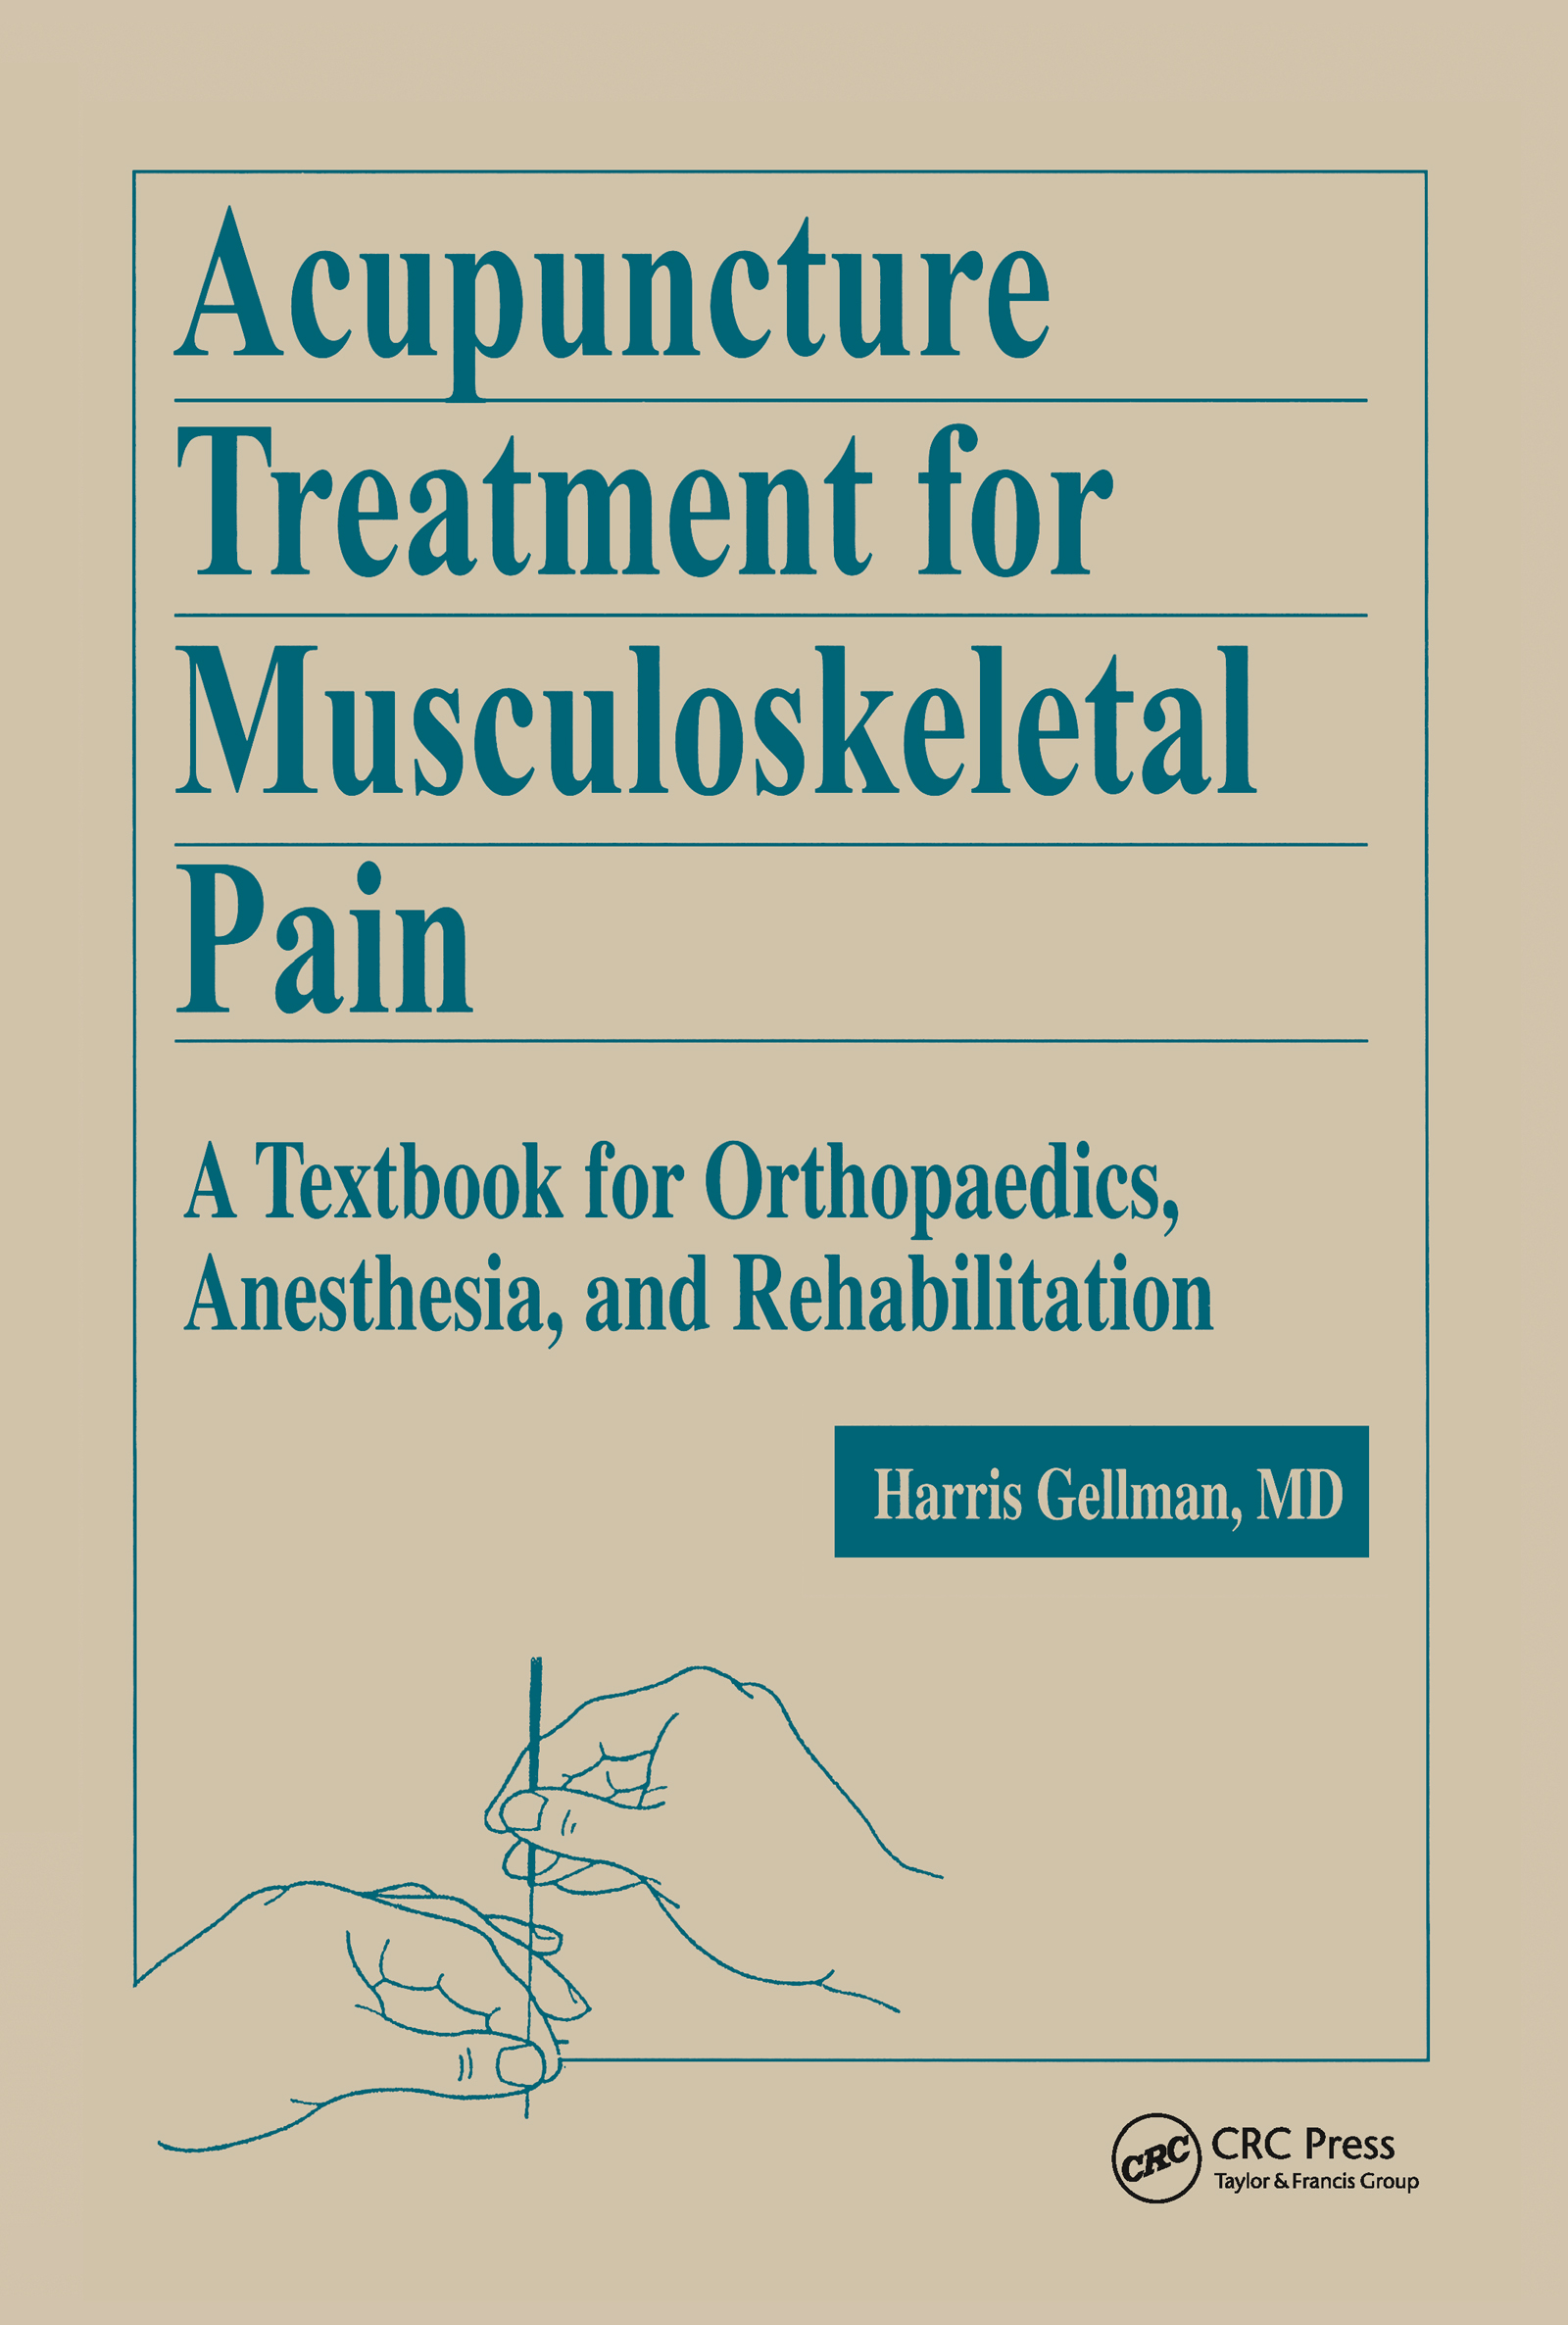 Acupuncture Treatment for Musculoskeletal Pain: A Textbook for Orthopaedics, Anesthesia, and Rehabilitation, 1st Edition (Hardback) book cover